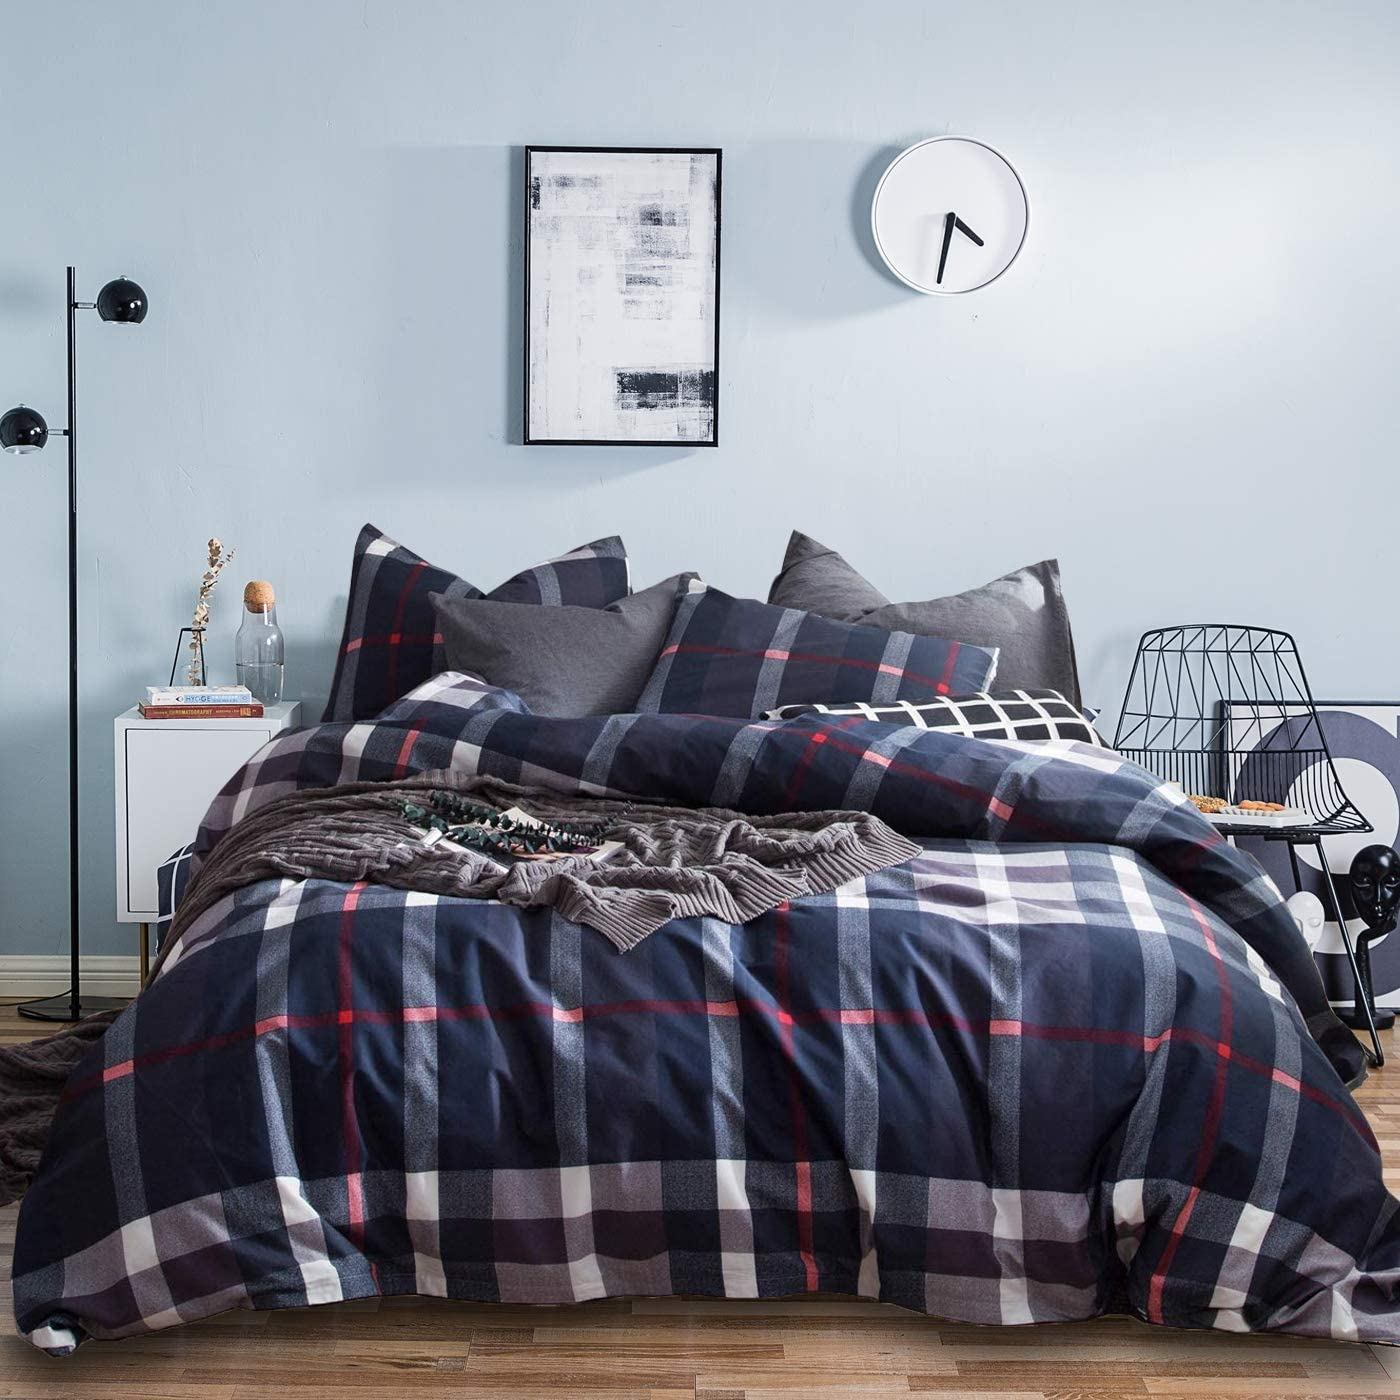 Jumeey Navy Plaid Duvet Cover Queen Buffalo Checkered Bedding Set Full Boys Dark Color Blue Grid Bedding Queen Men Tartan Bedding Set Men Women Cotton Full Size Gingham Checker Duvet Cover Sets